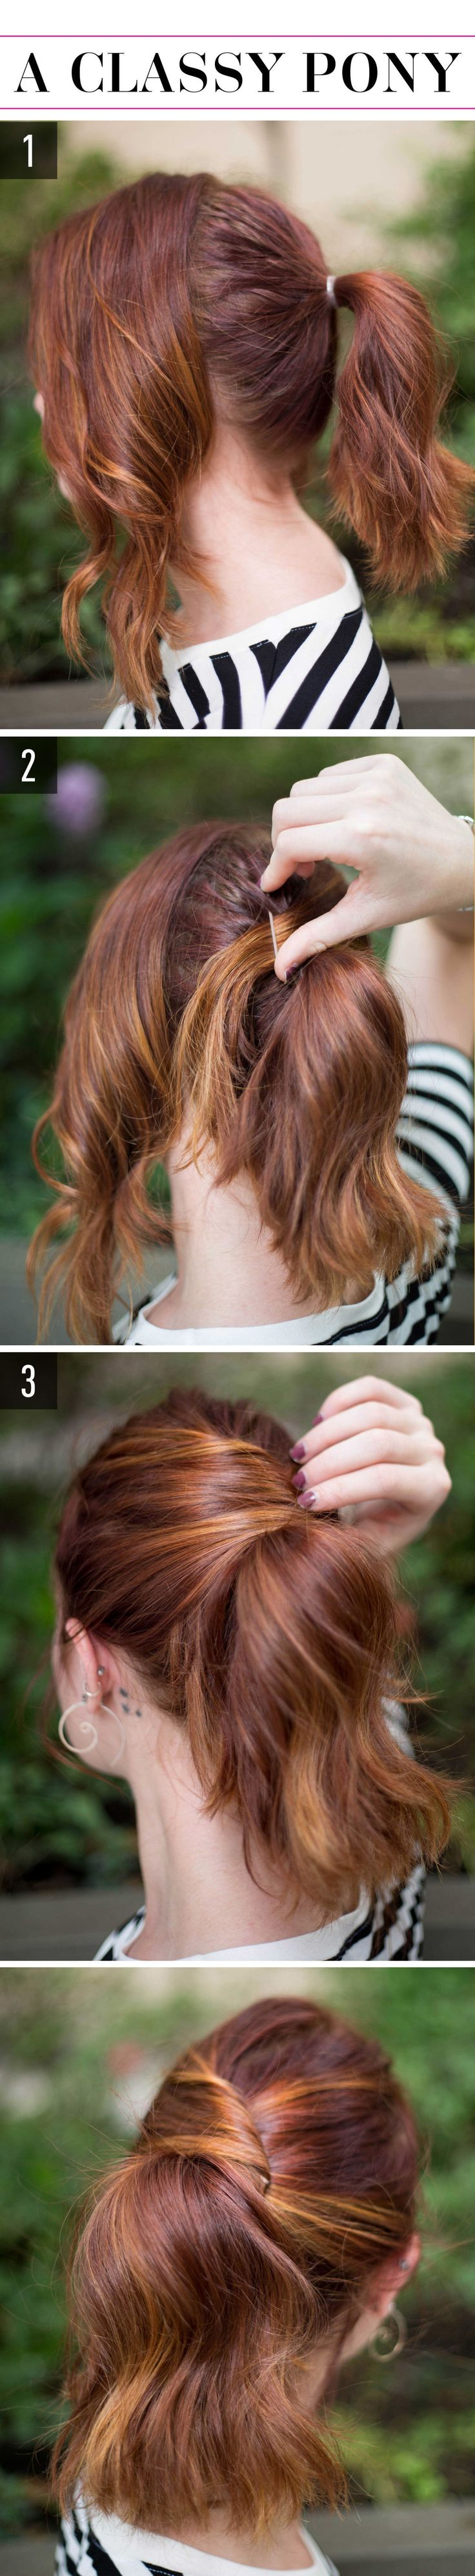 nice 15 Super-Easy Hairstyles for Lazy Girls Who Can't Even (With images) | Lazy girl hairstyles ...